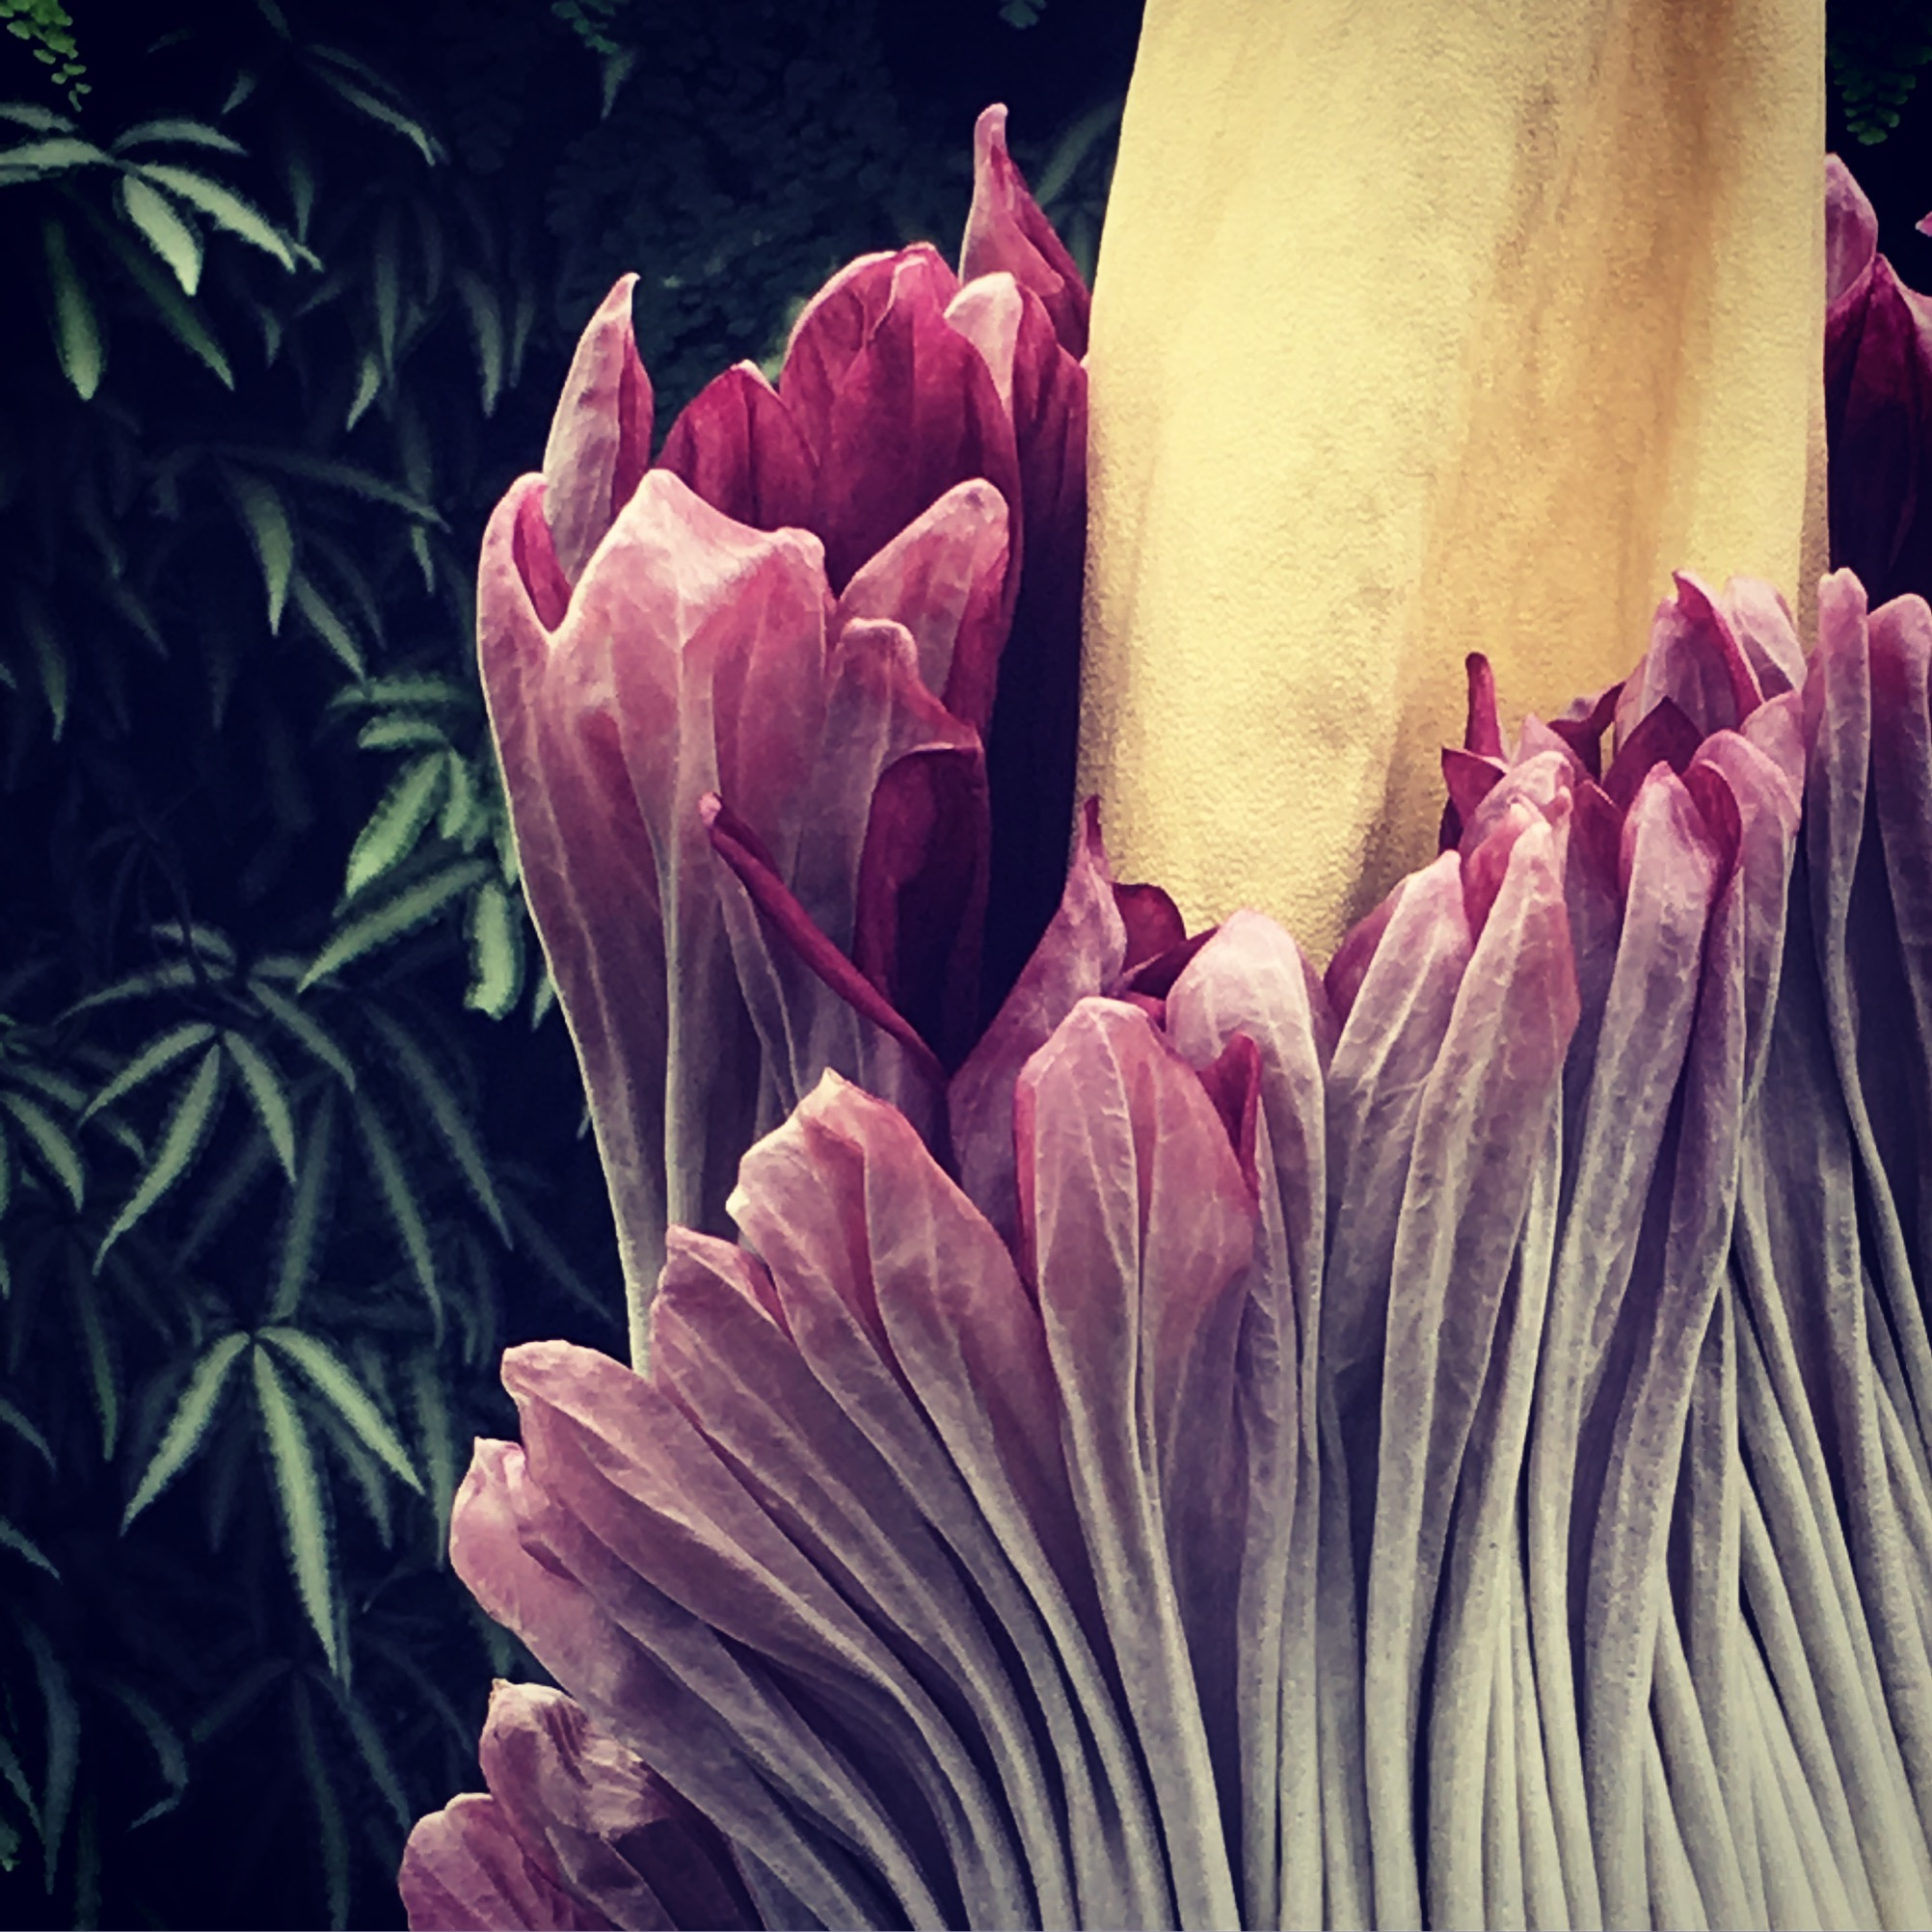 Close-up of the Suma the Titan after full bloom at San Francisco Conservatory of Flowers—Julie Daley